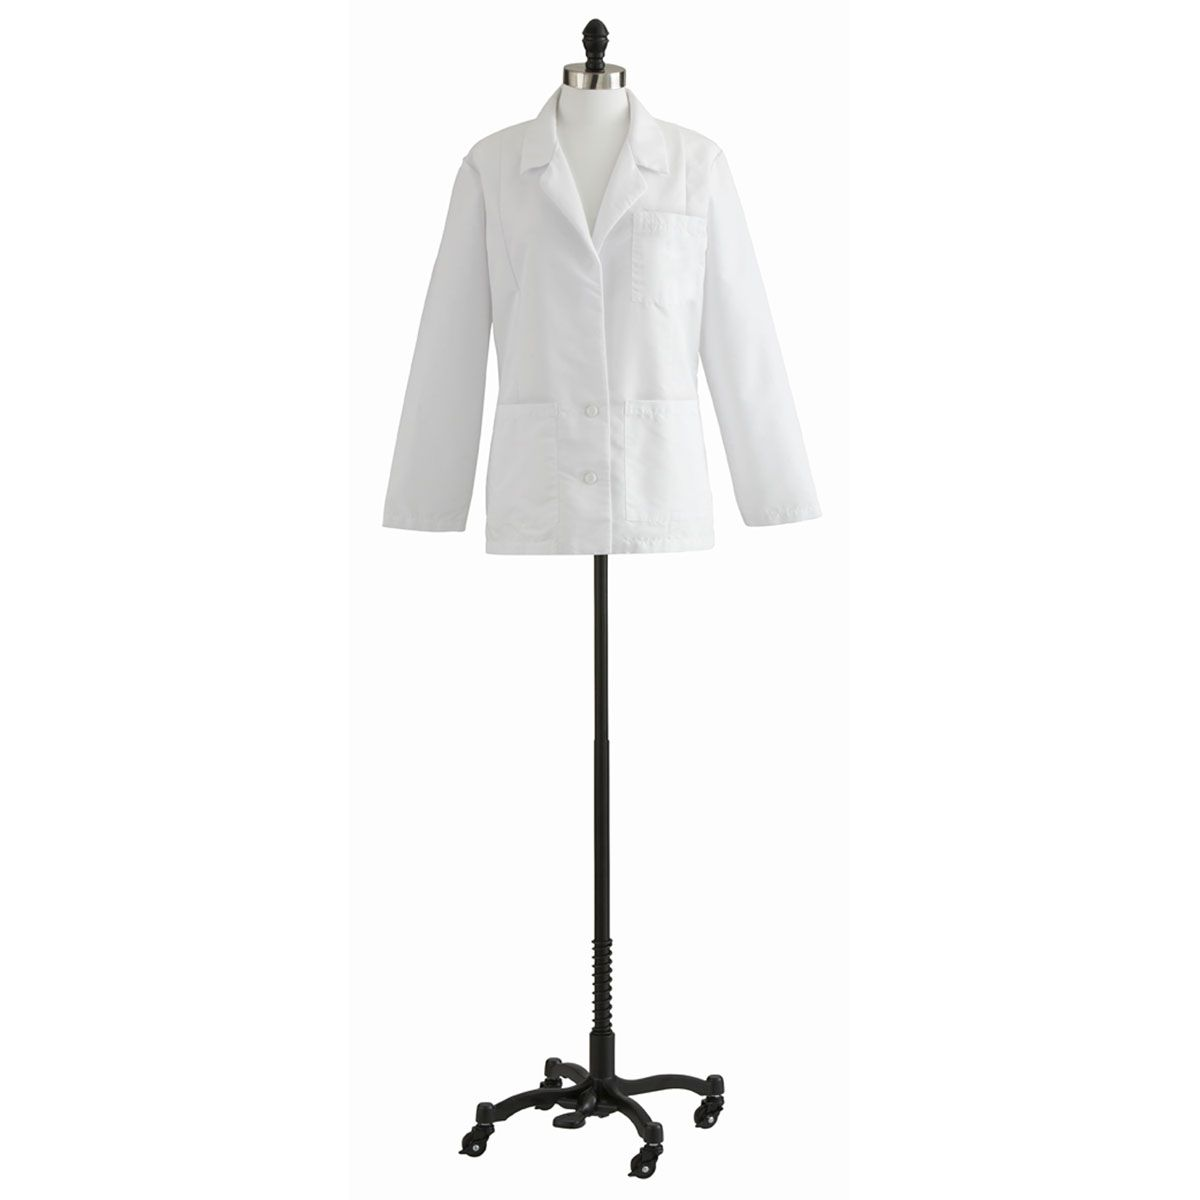 Medline Ladies Consultation Coat - White, 12, Each - Model 88018QHW12